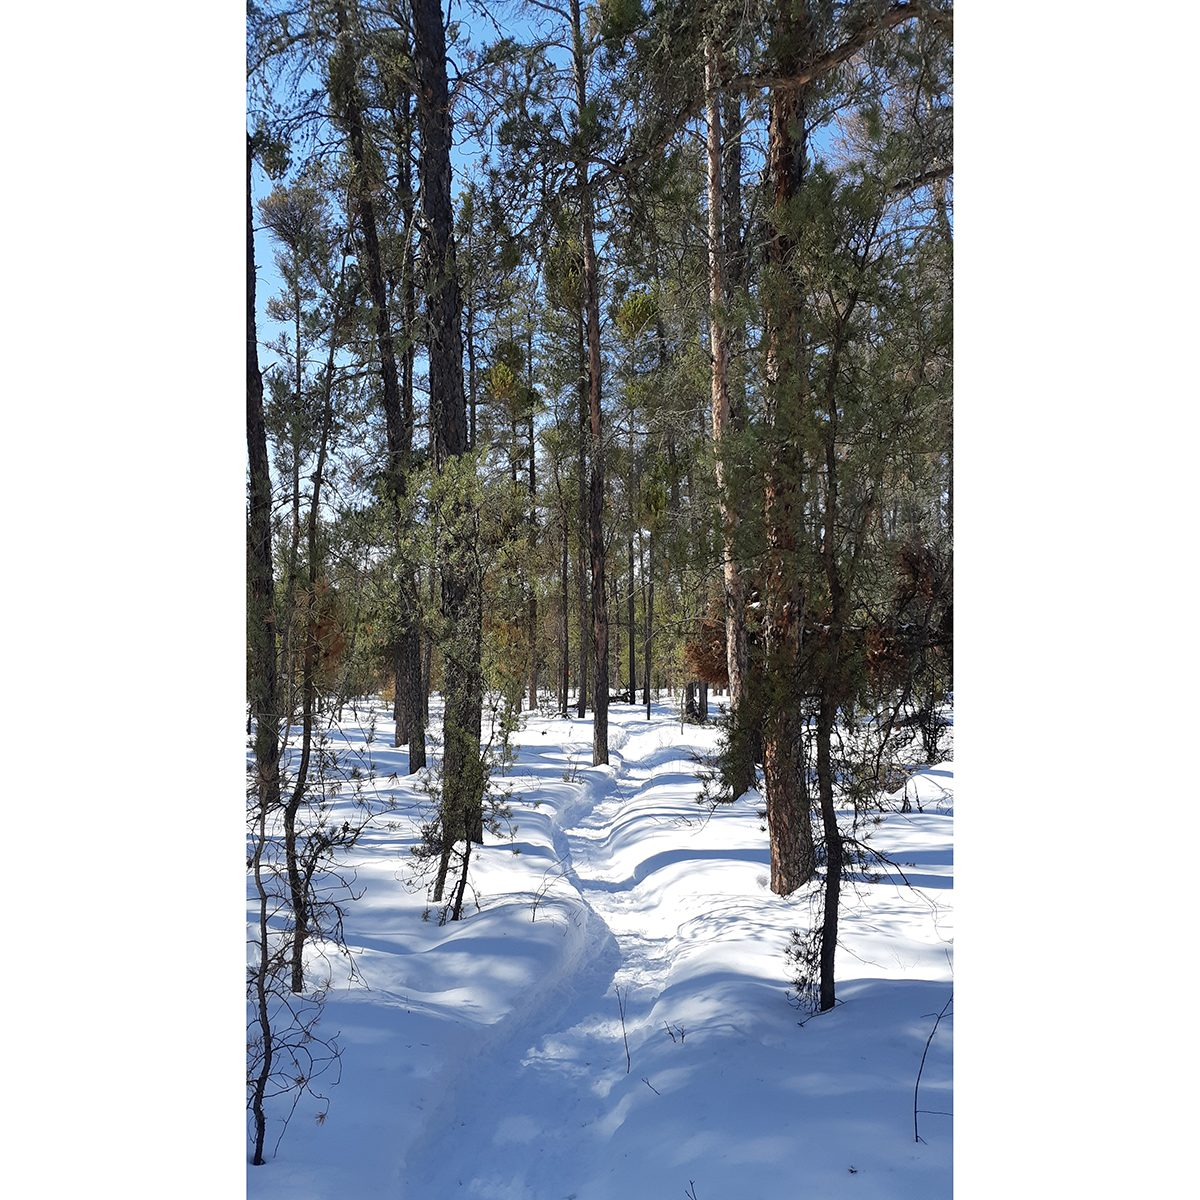 My Happy Place - Forest Trail Through Snow